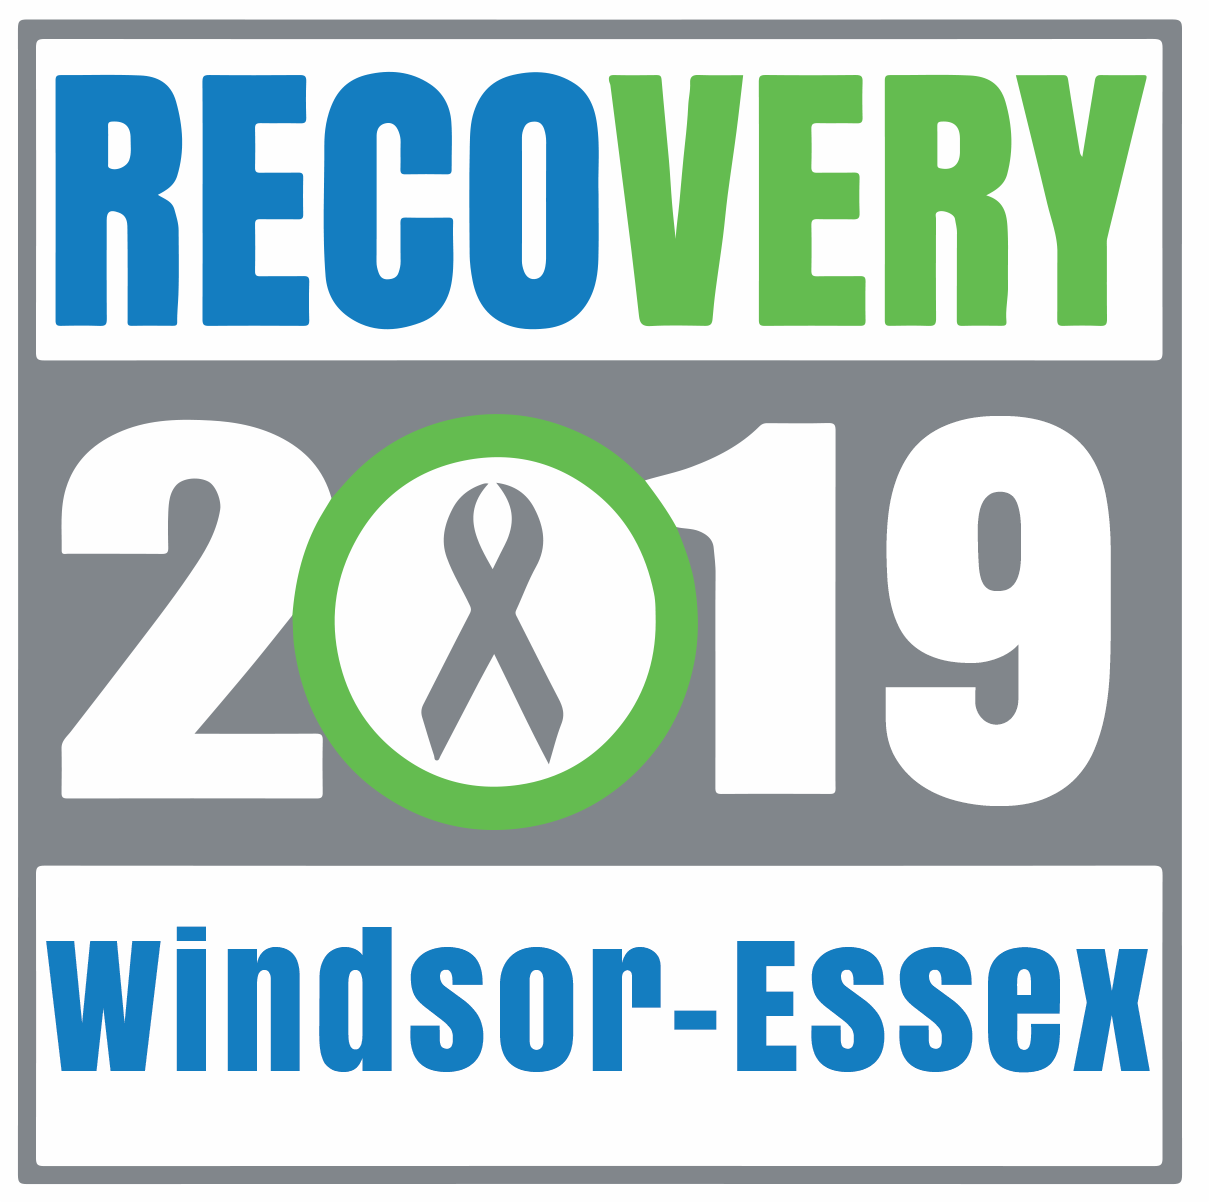 recovery-day-2019-Windsor-essex.png